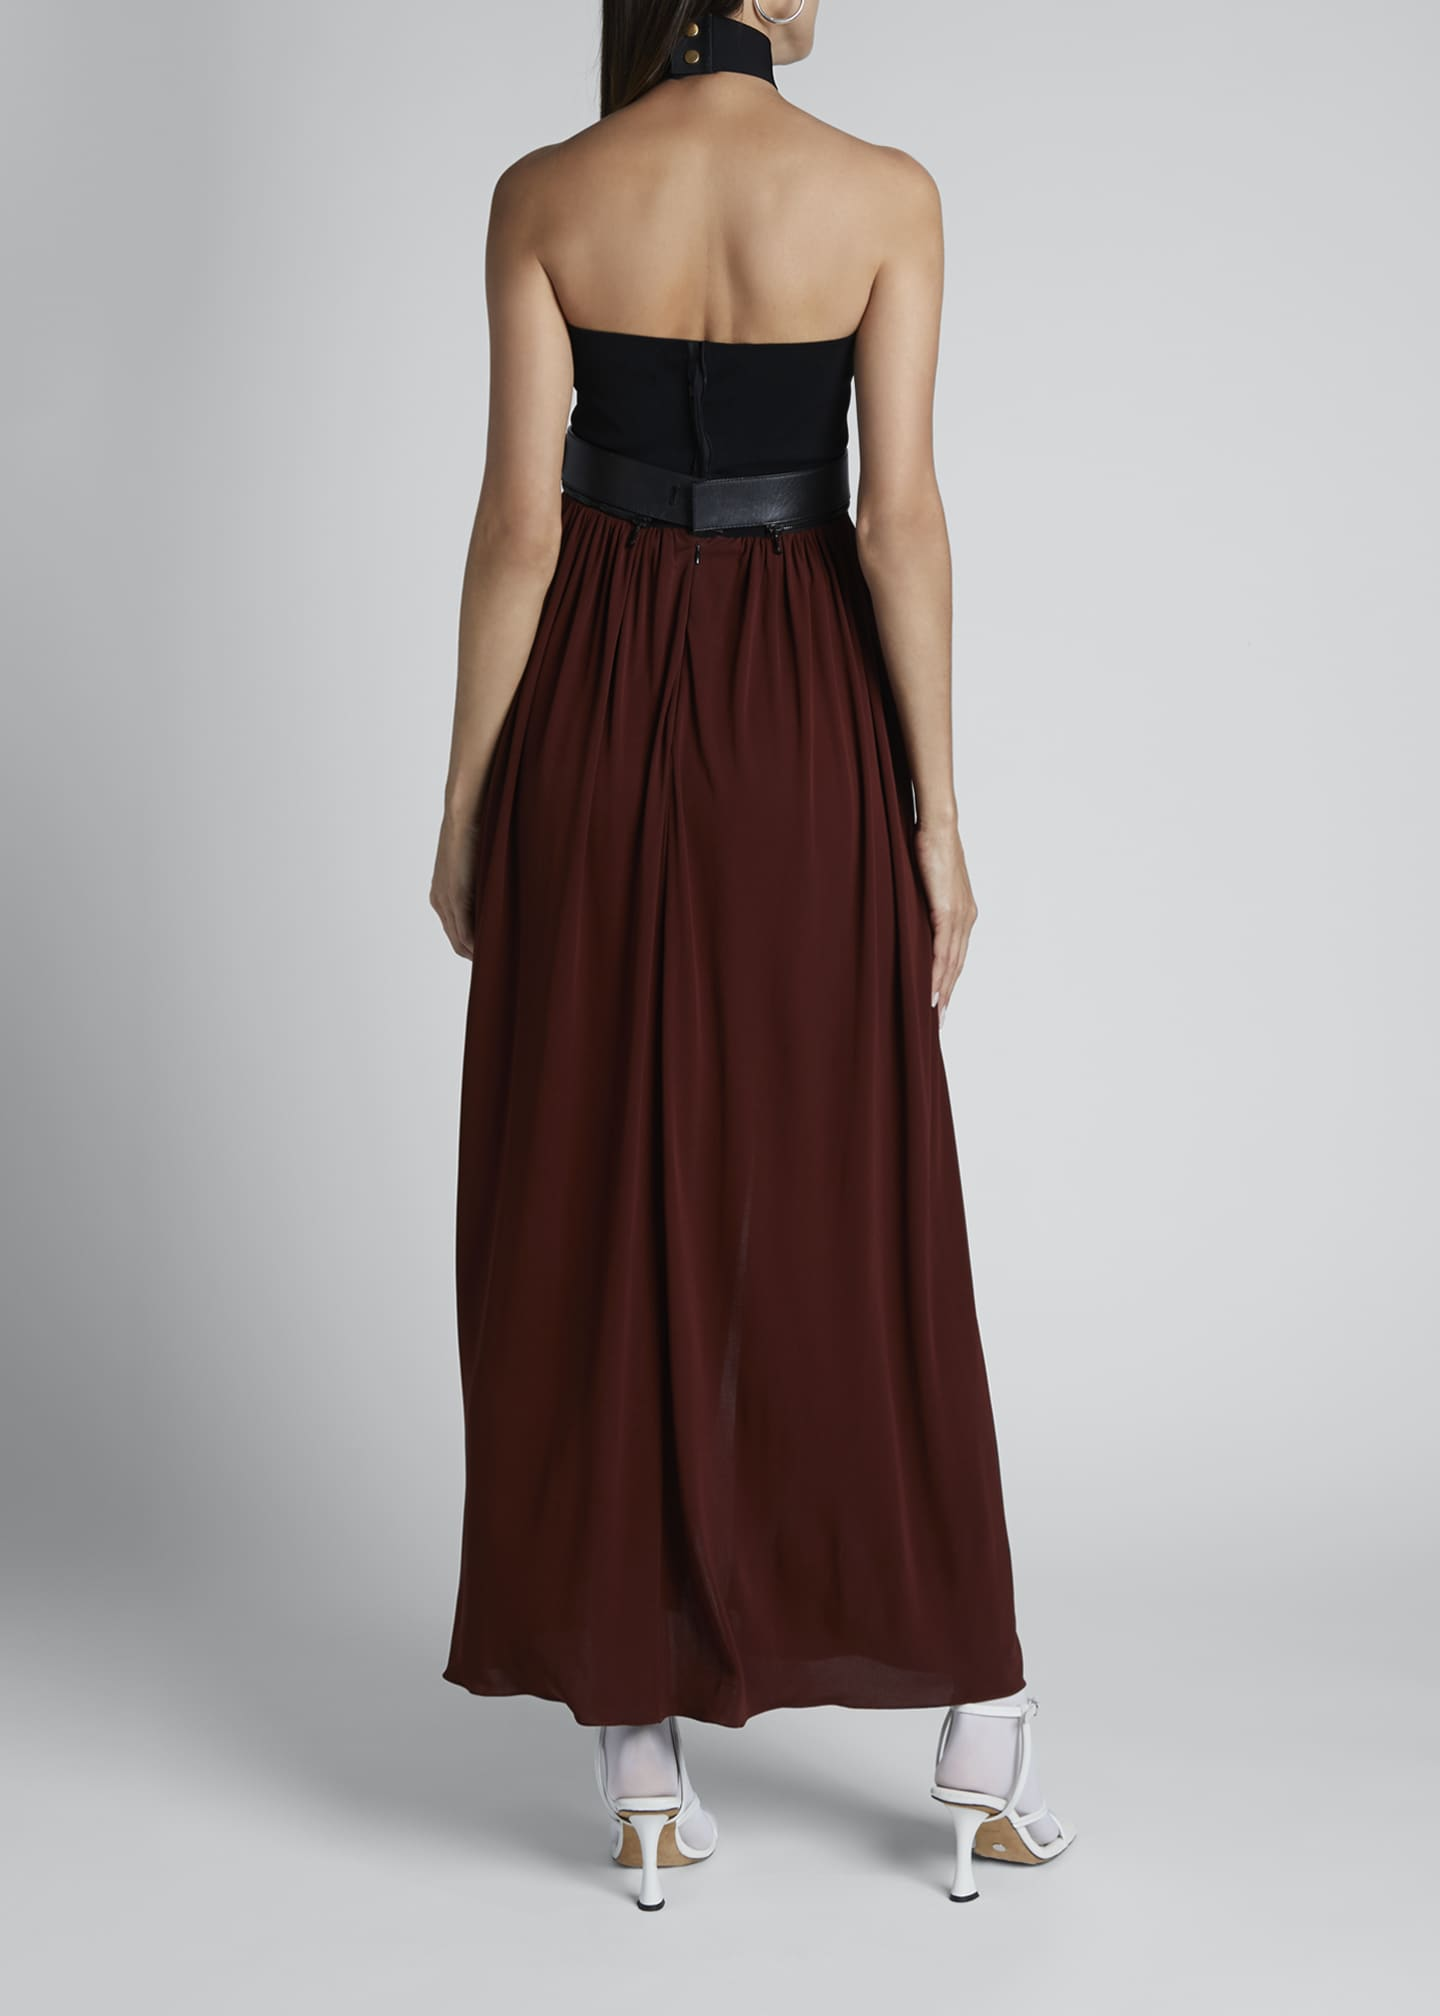 Image 2 of 2: Strapless Two-Tone Jersey Maxi Dress